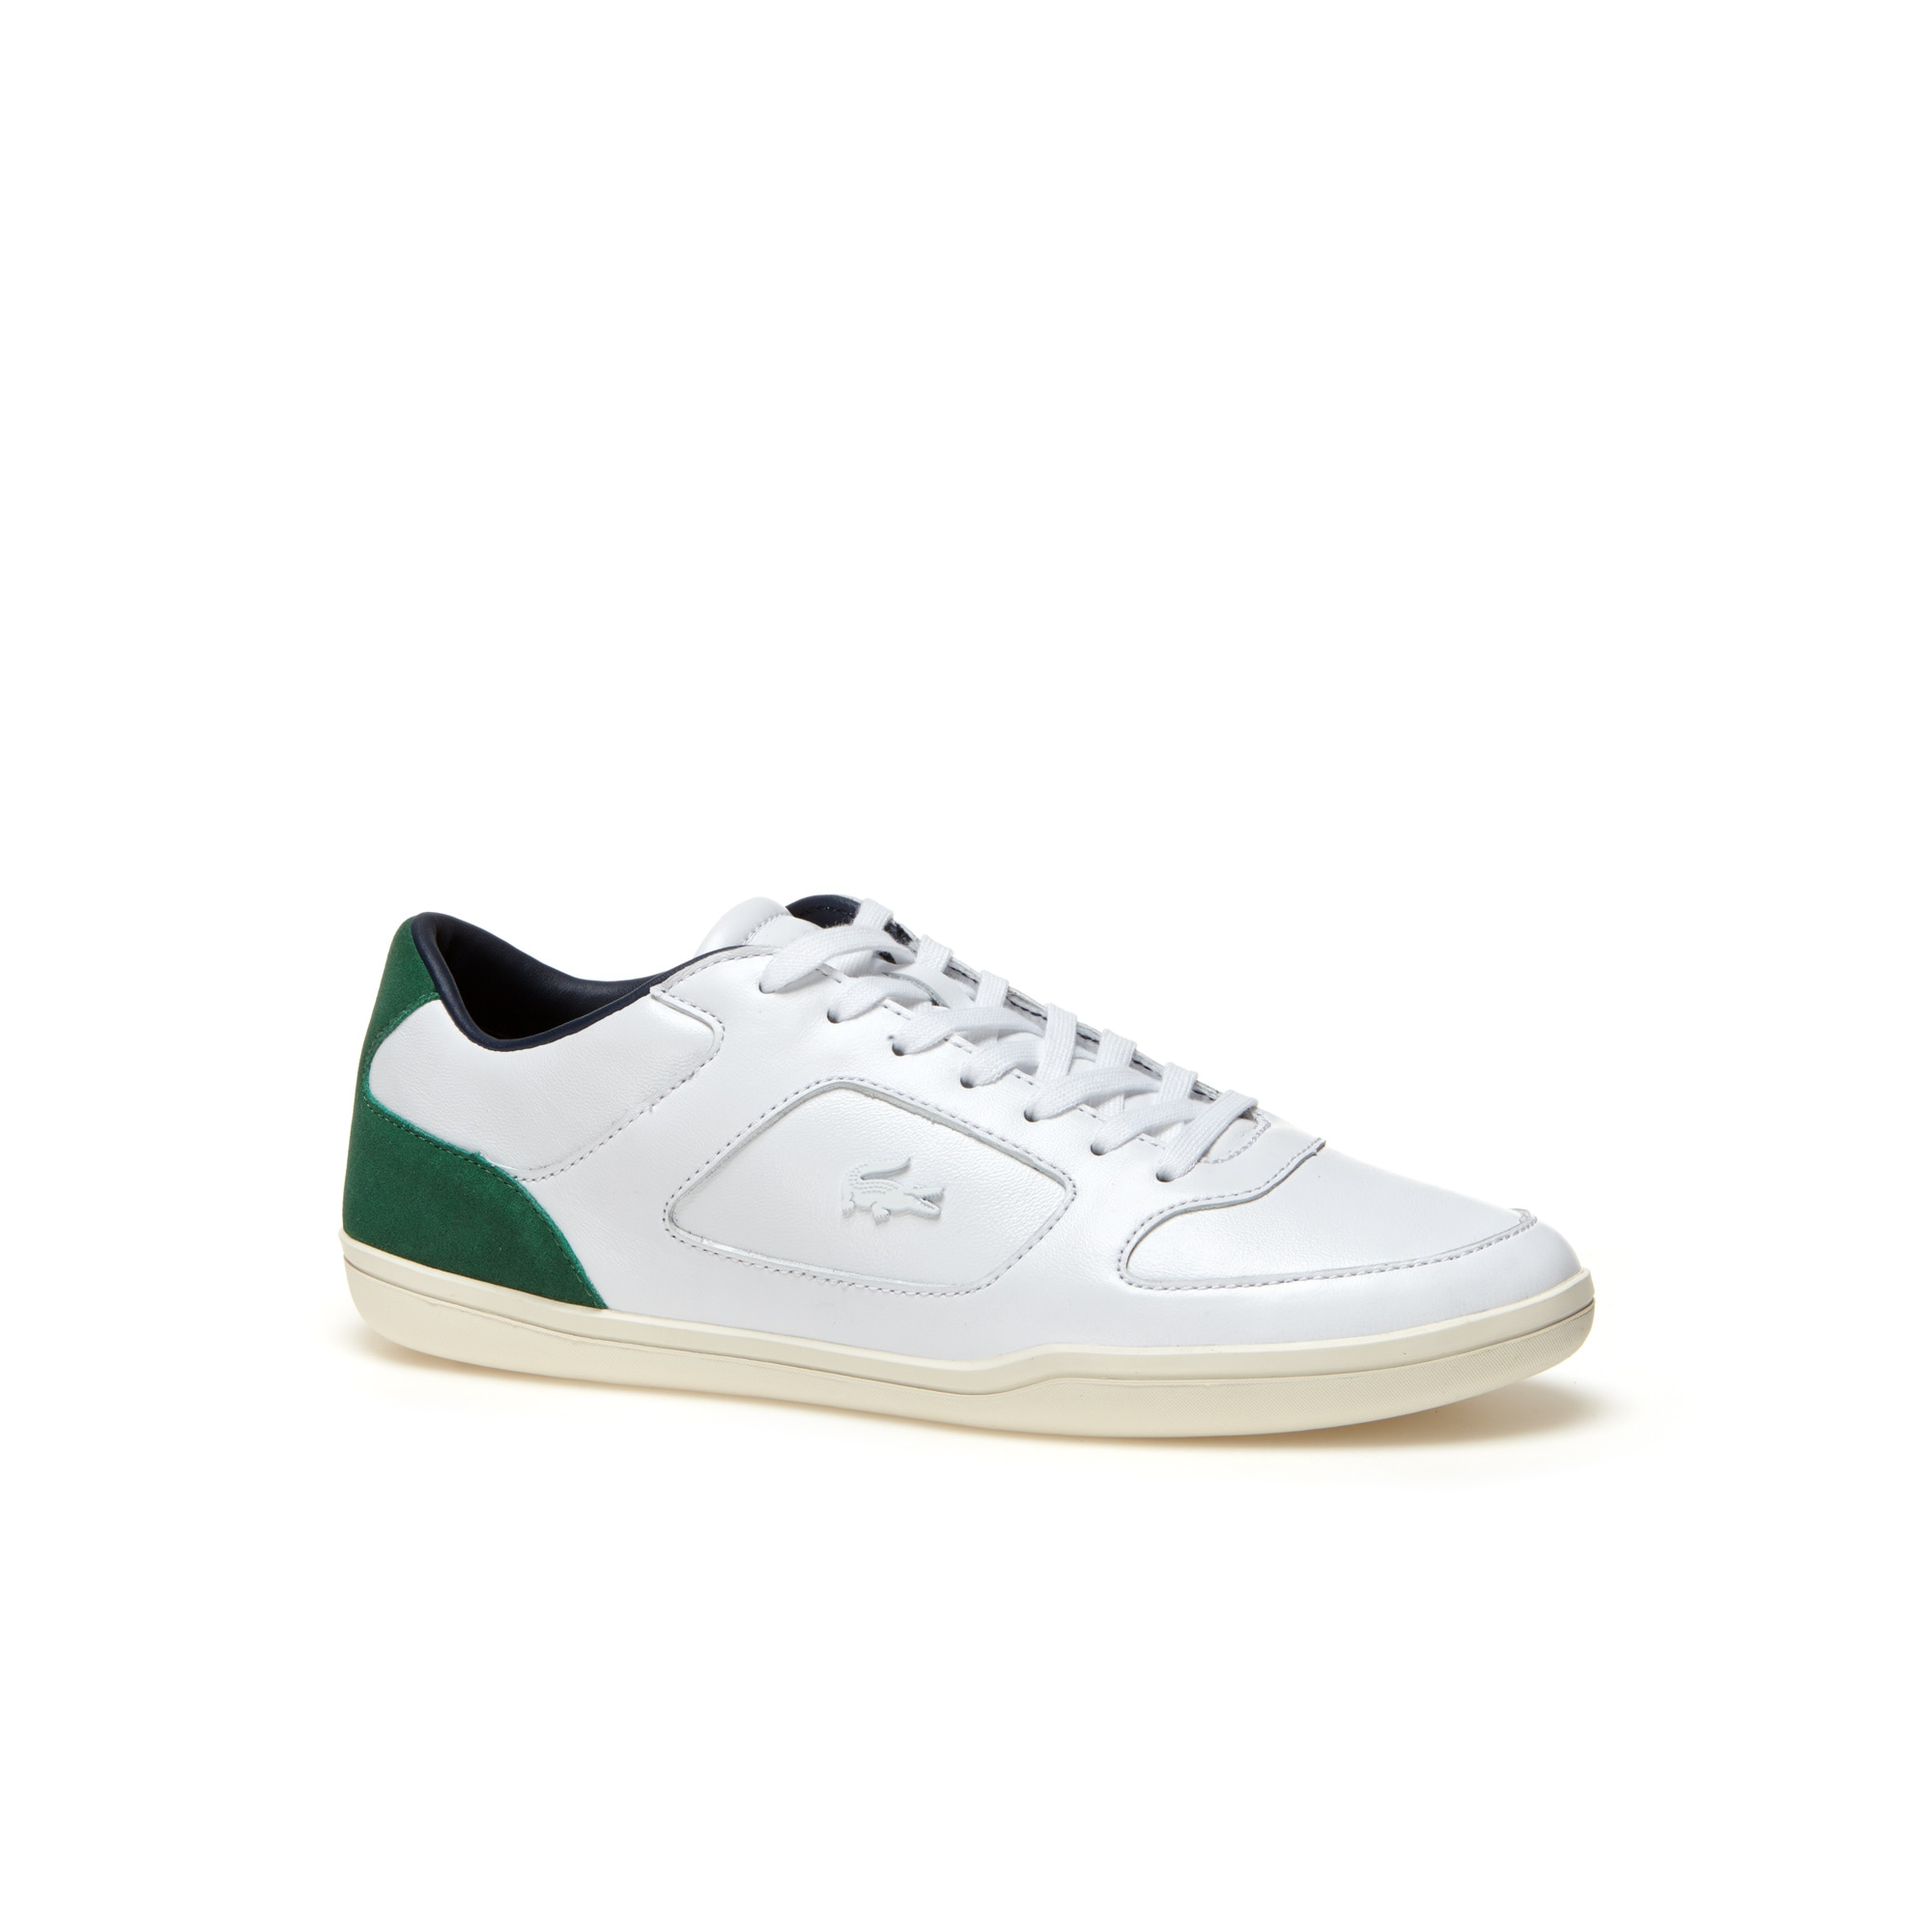 Men's Court-Minimal Leather Sneakers